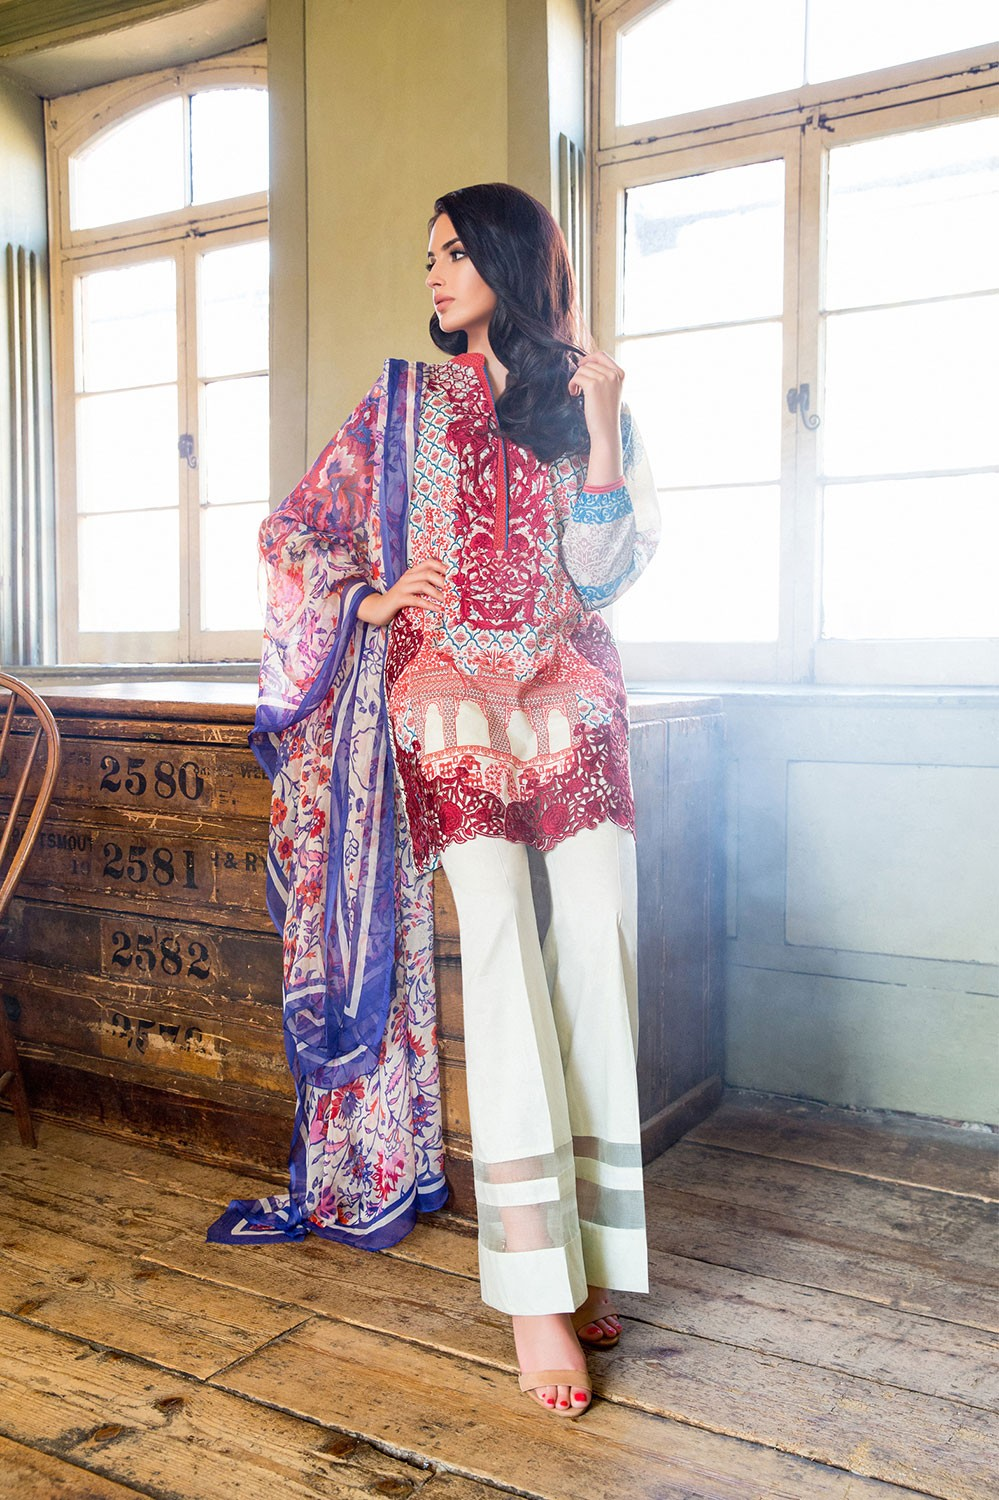 sobia-nazir-latest-pakistani-dresses-styles-pairing-bell-bottom-pants